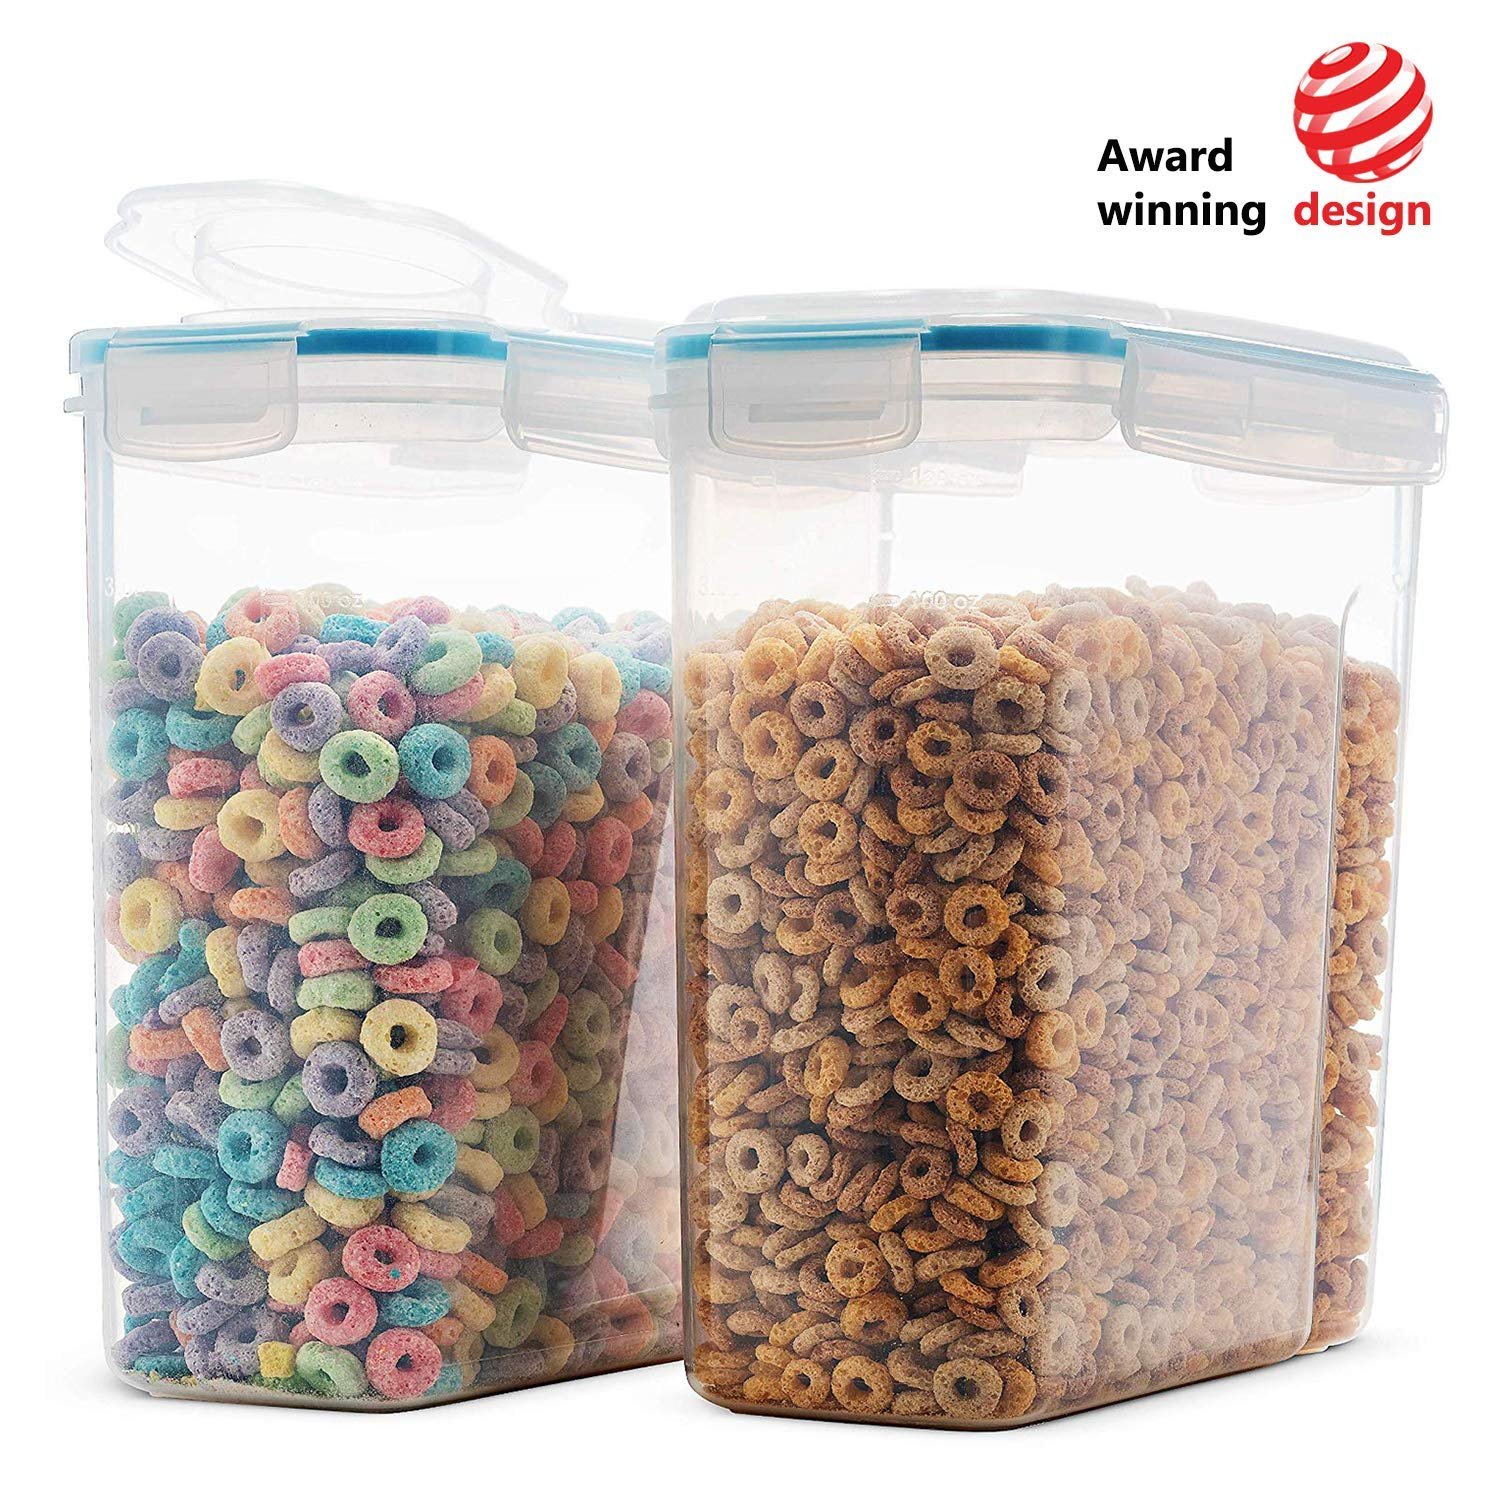 Komax Biokips Original Airtight Cereal Container (2 Pack) | 16 9 Cups 135  Ounce | Airtight Food Storage Containers - BPA-Free Cereal Dispenser |